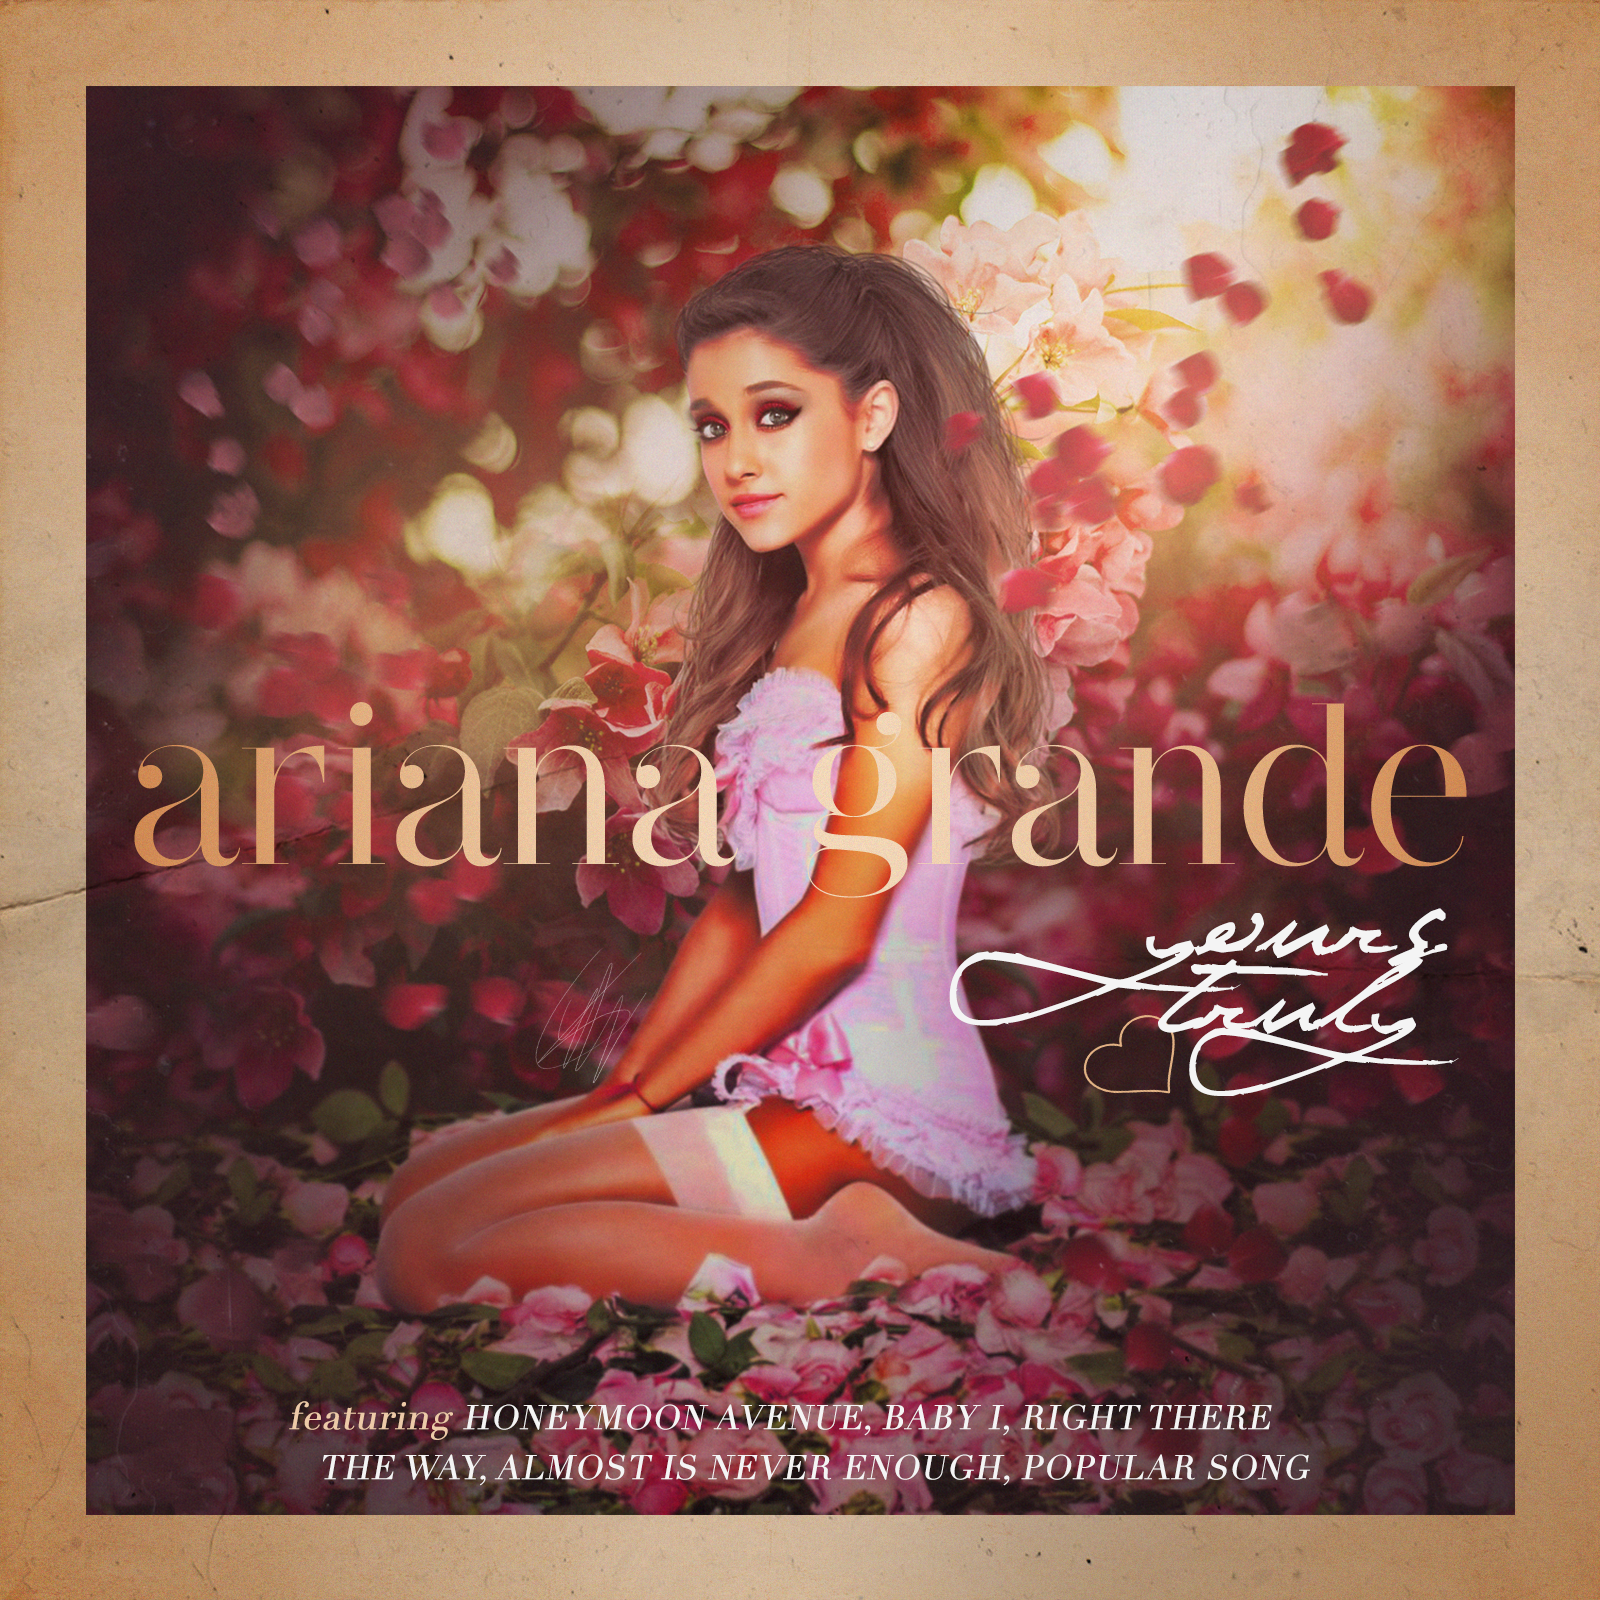 Downlaod Ariana Grande Thanks U Next Ilkpop: Yours Truly By GOLDENDesignCover On DeviantArt